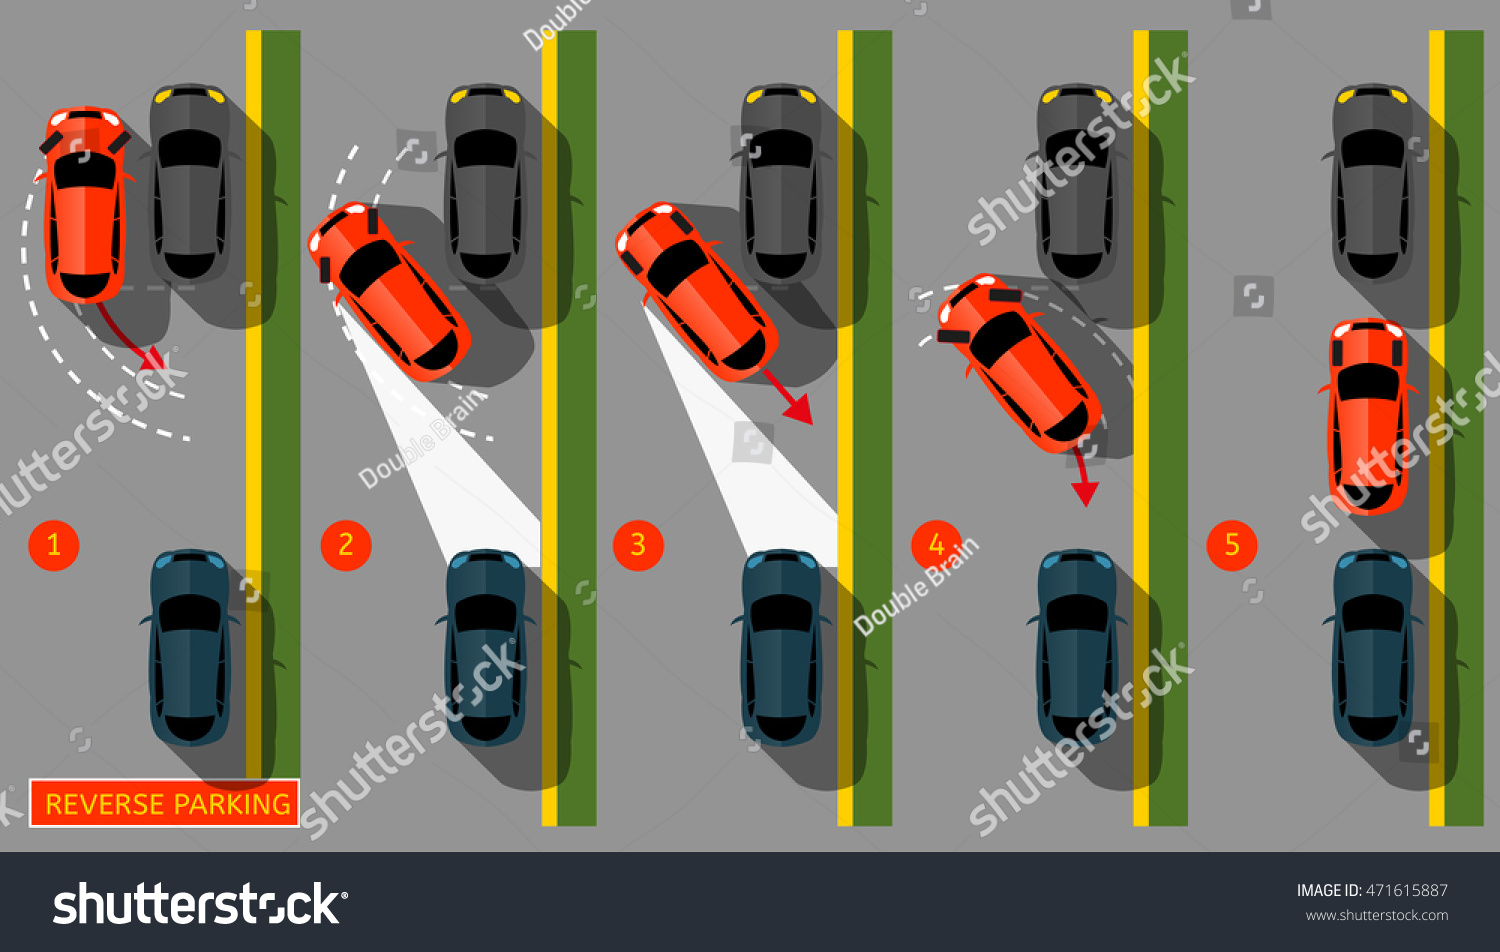 Parking in reverse between cars: the scheme. Parallel parking in reverse 73